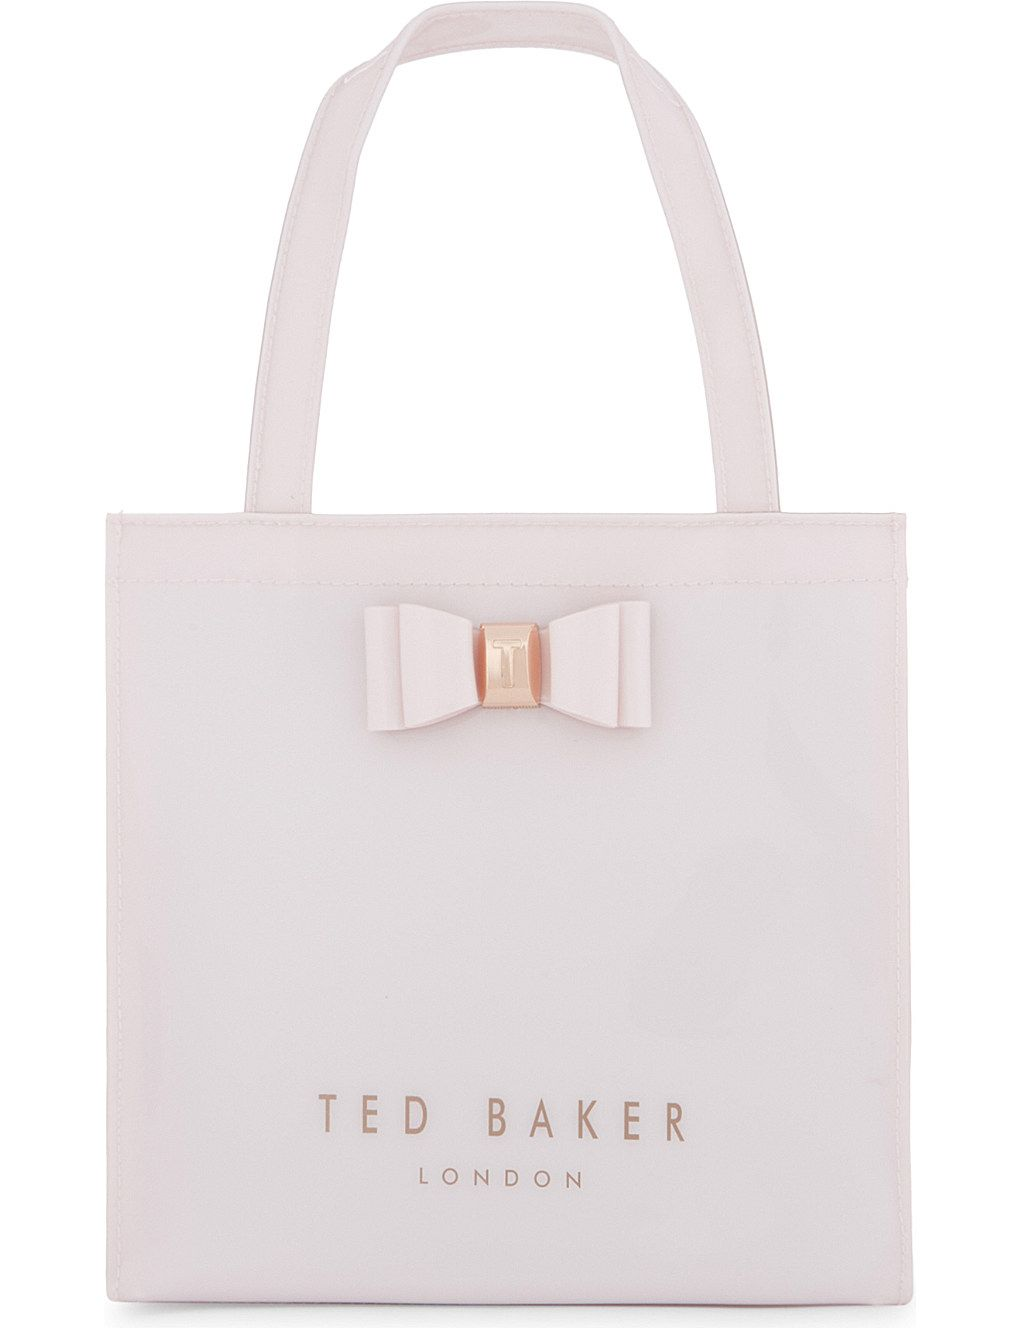 728f98dcf7b TED BAKER Jenacon bow detail icon bag | ของดีน่าซื้อ | Bags, Ted ...